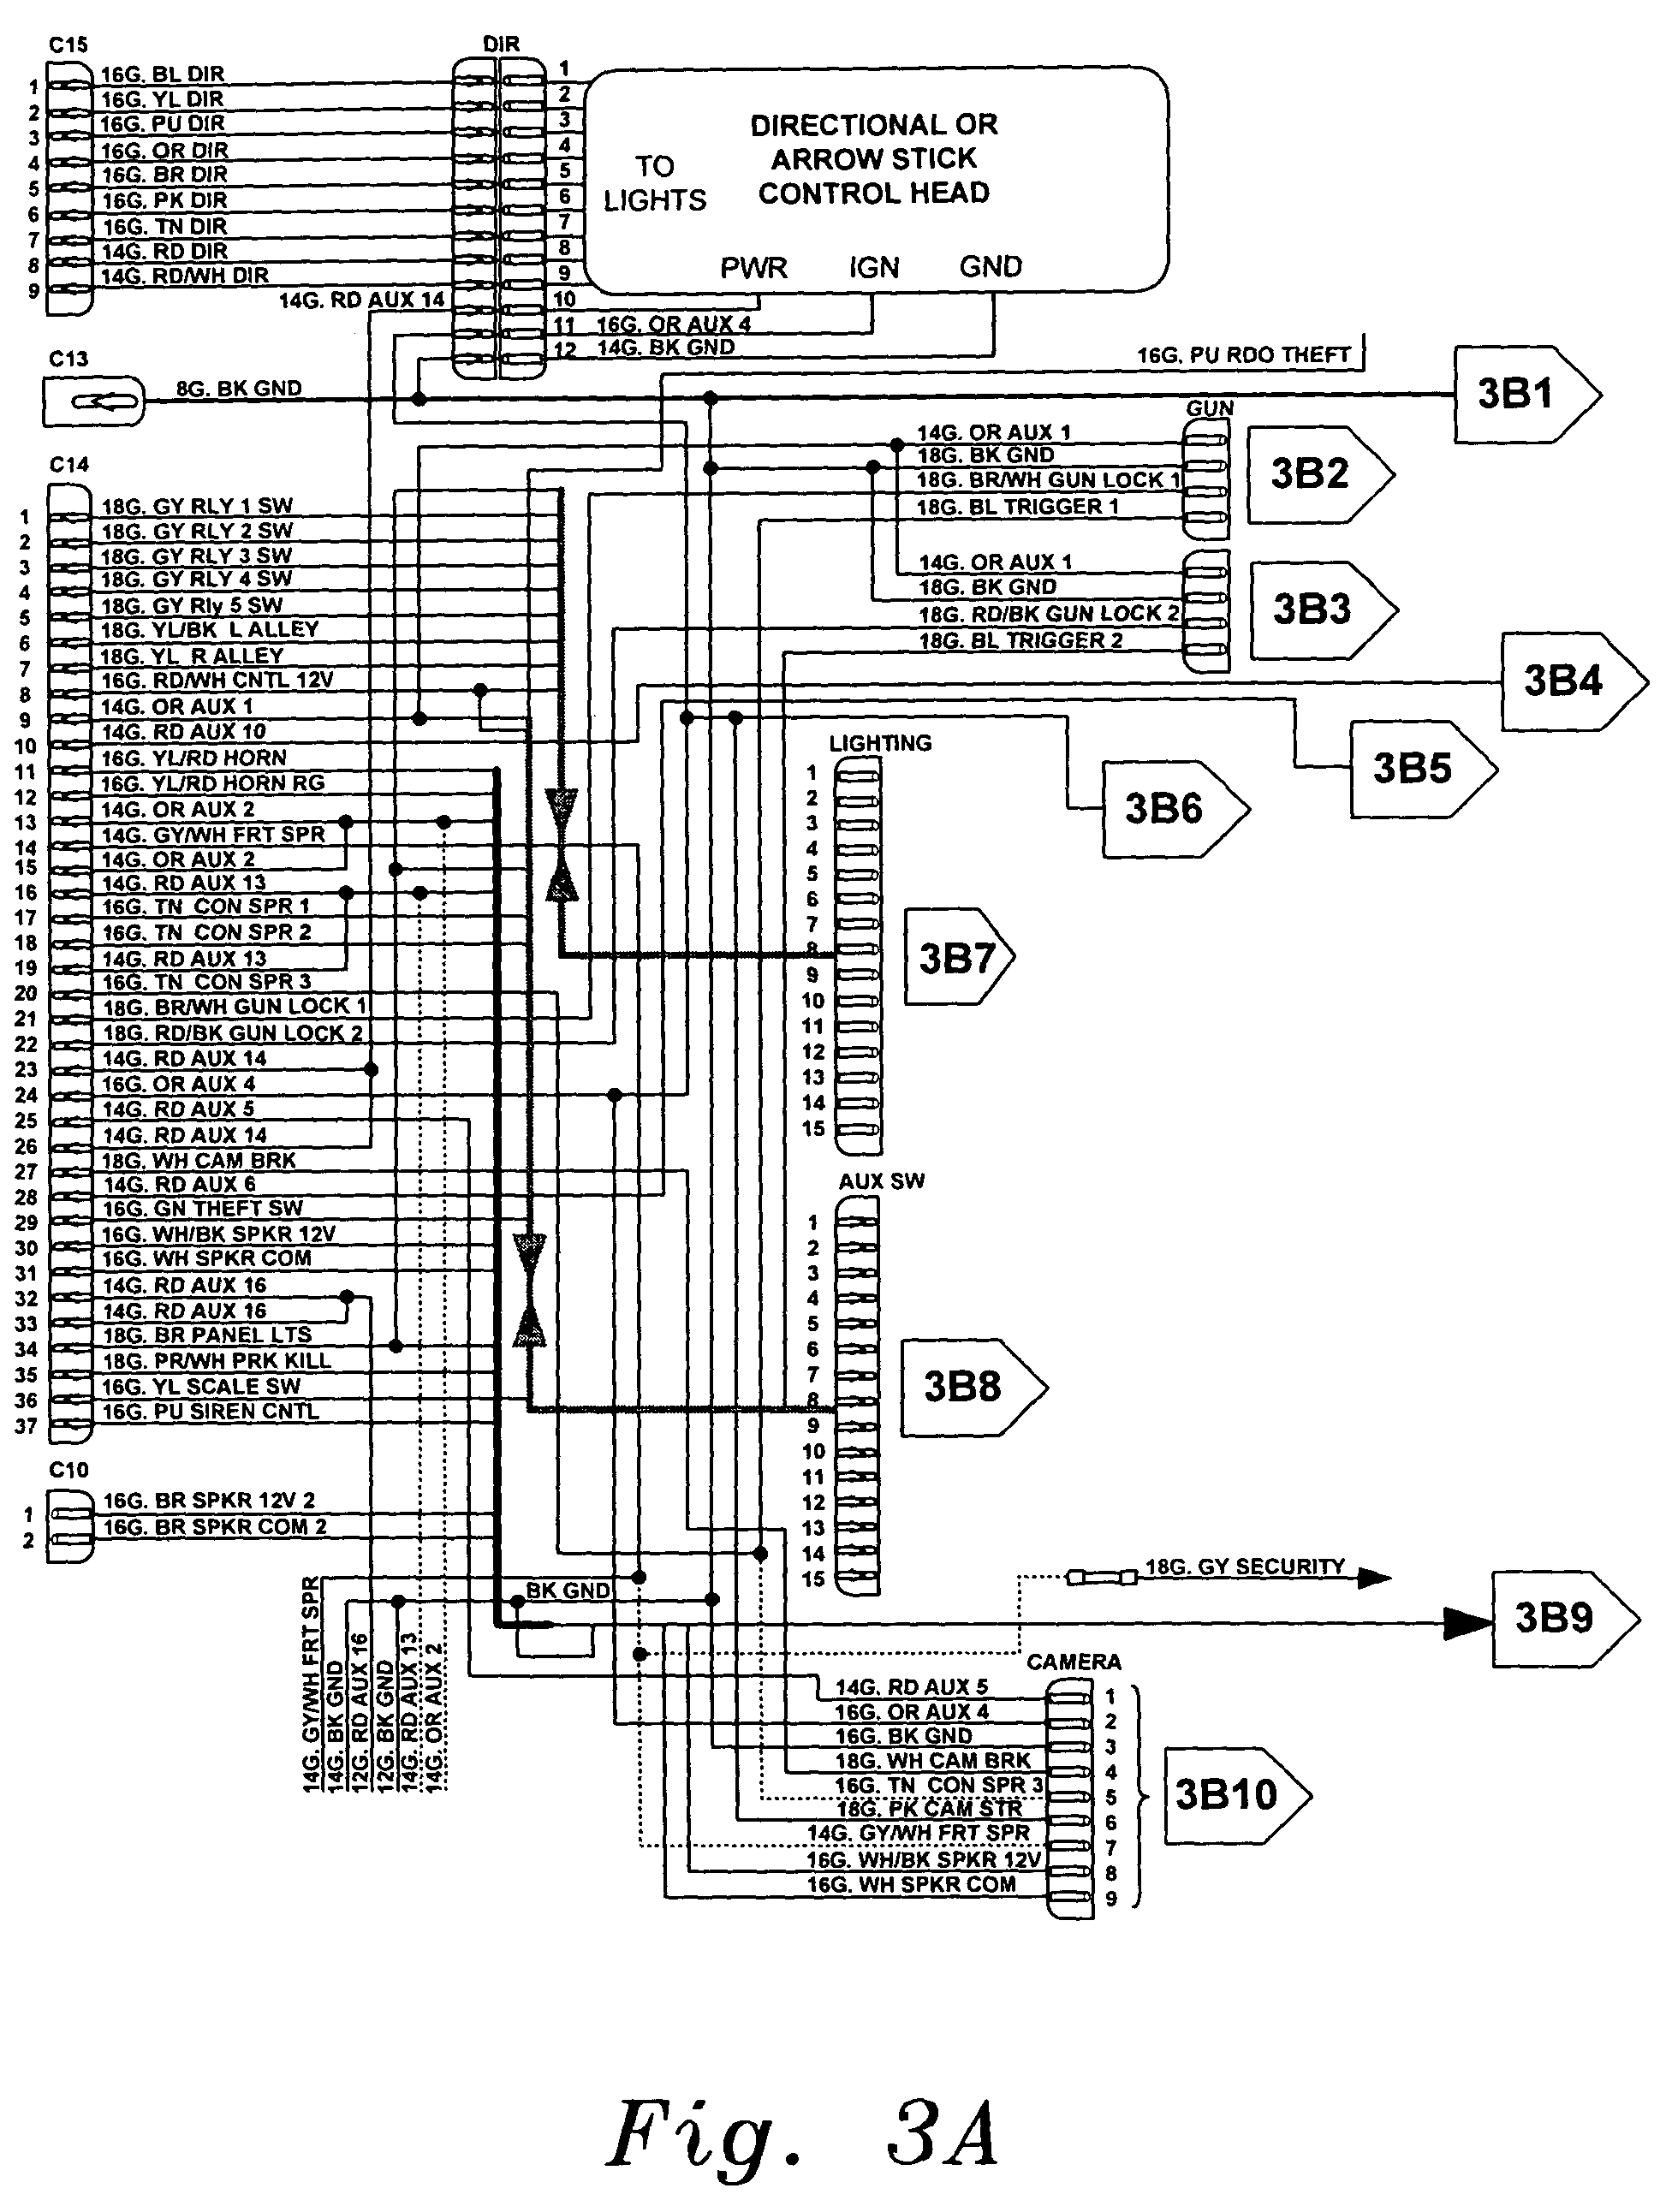 c18 cat ecm pin wiring diagram cummins isx fuel system